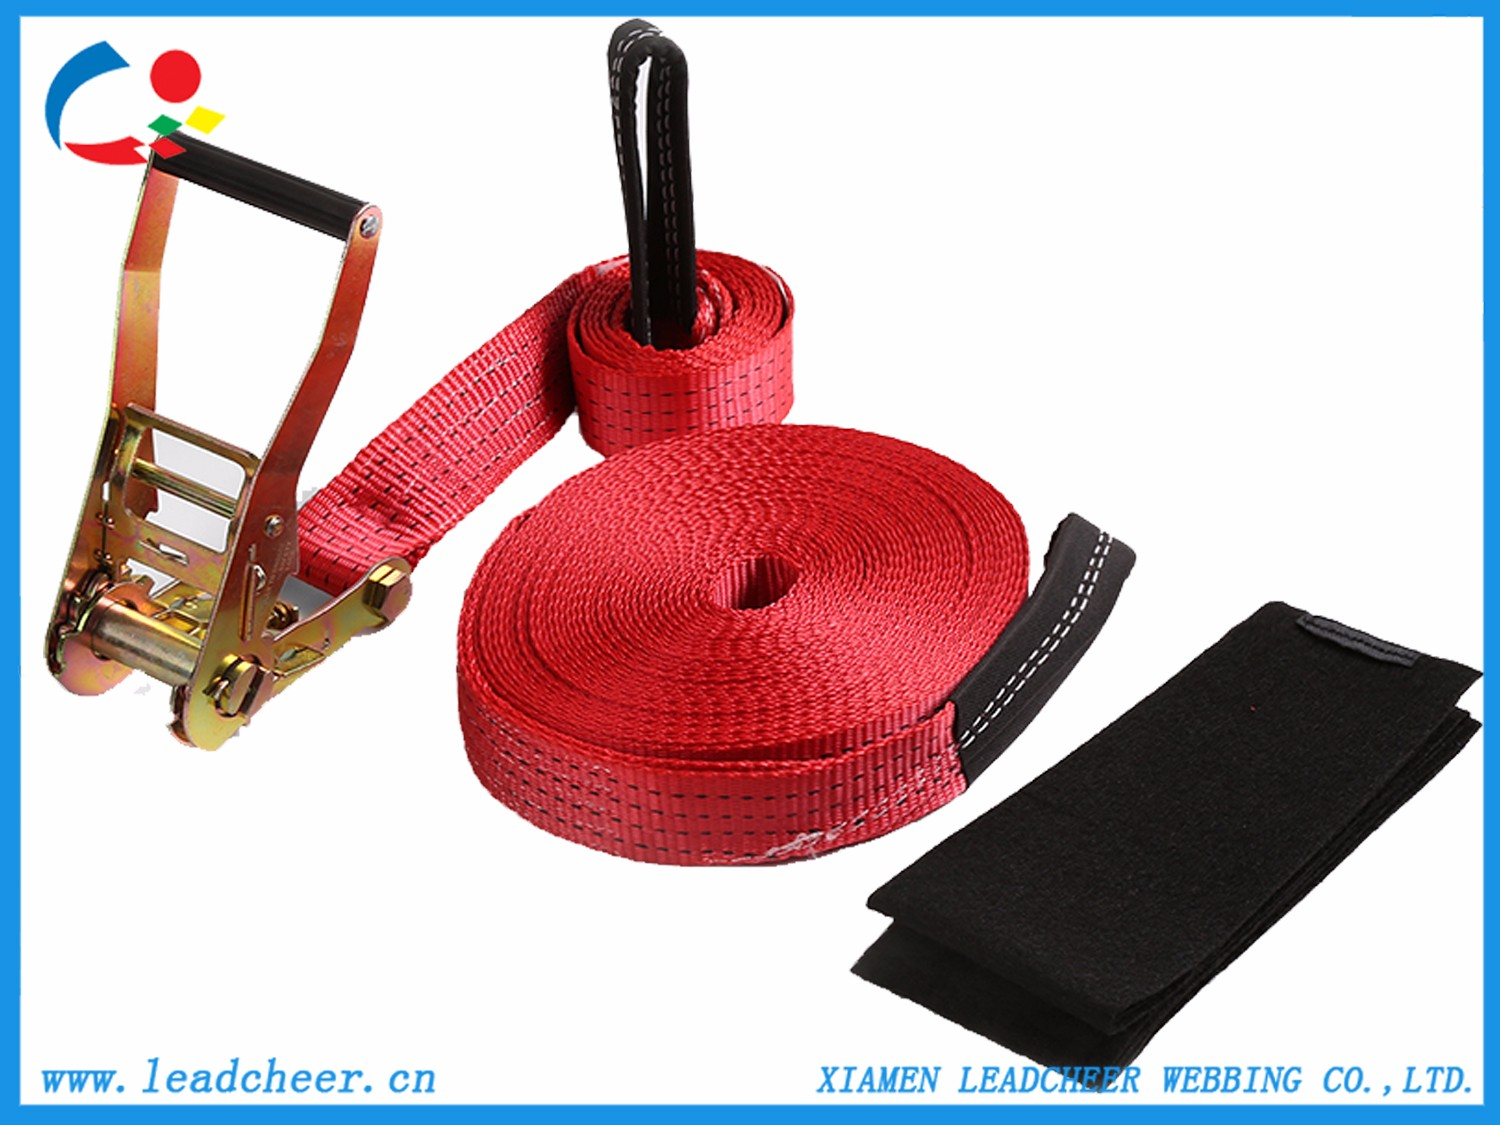 High quality Cheap Manufacturer Direct Durable Slackline with Ratchets Quotes,China Cheap Manufacturer Direct Durable Slackline with Ratchets Factory,Cheap Manufacturer Direct Durable Slackline with Ratchets Purchasing